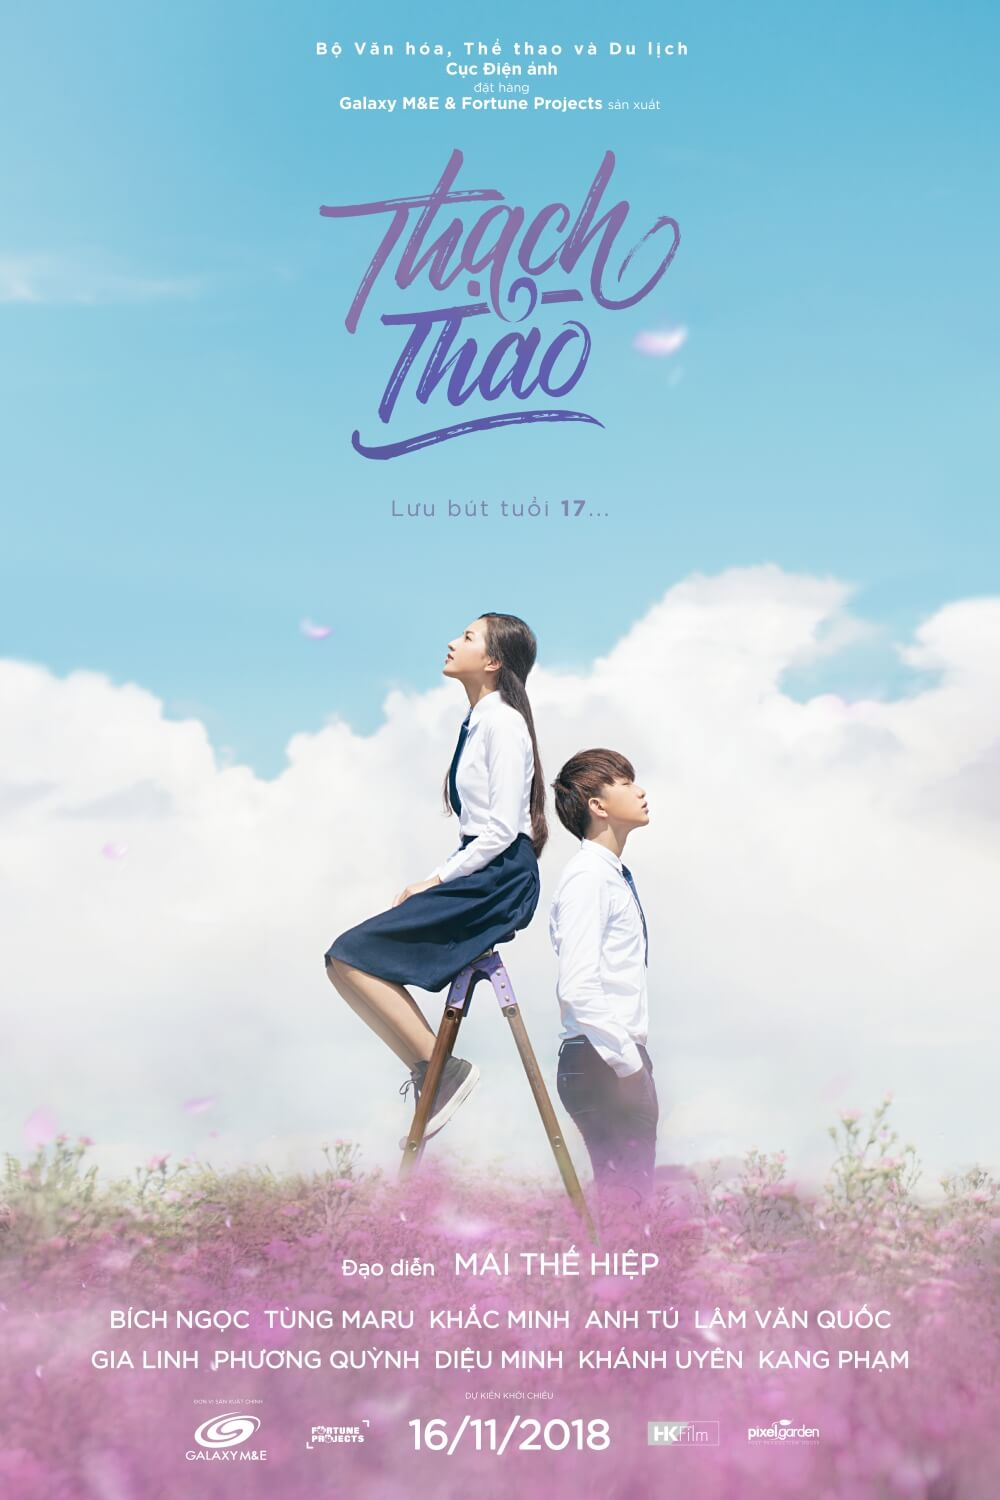 Thạch Thảo teaser poster